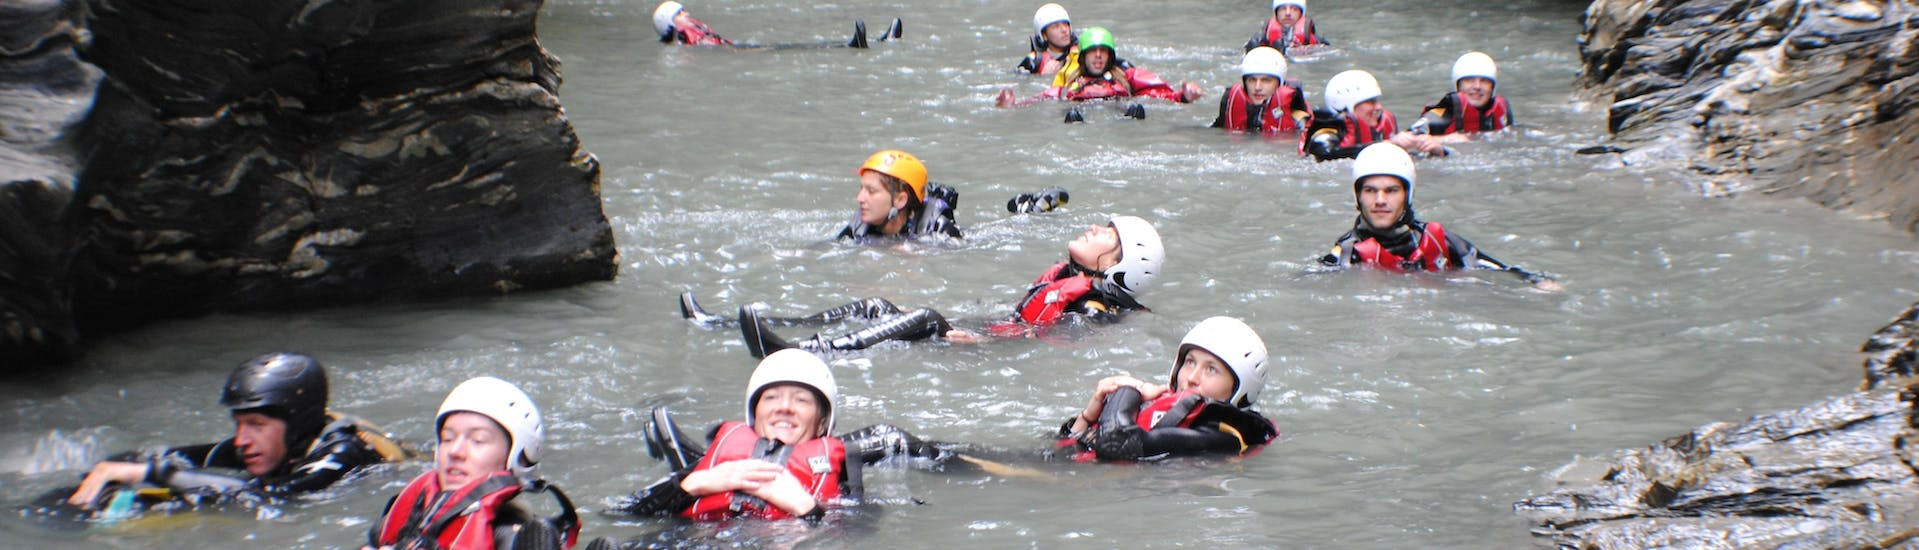 Canyoning for Beginners - Viamala